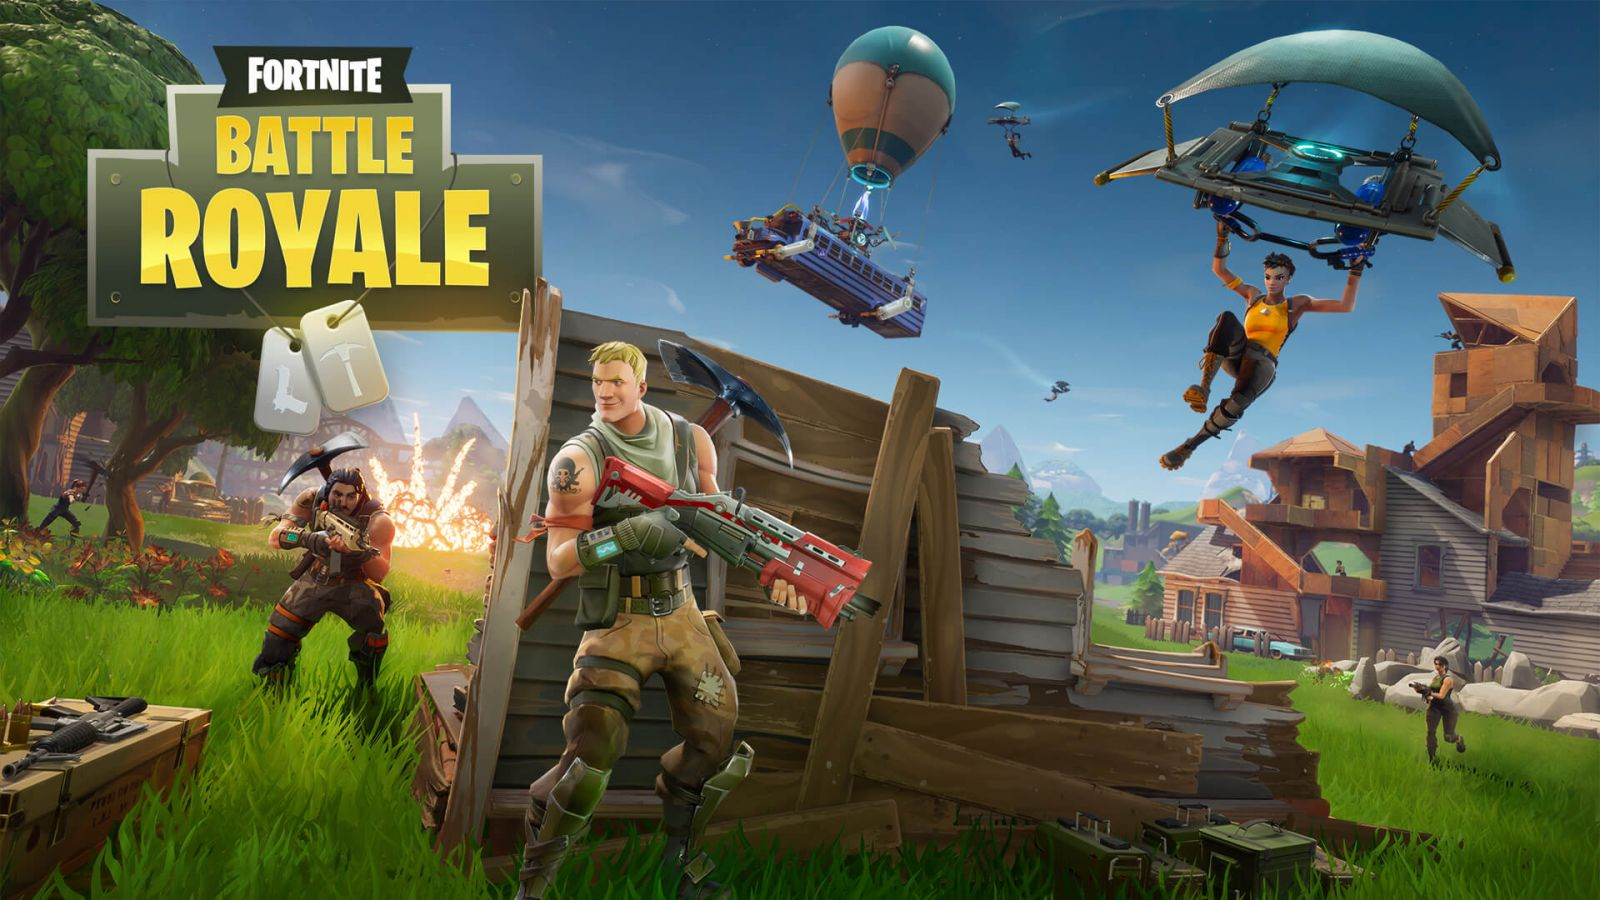 cach tai va cai dat fortnite battle royale hinh anh 1